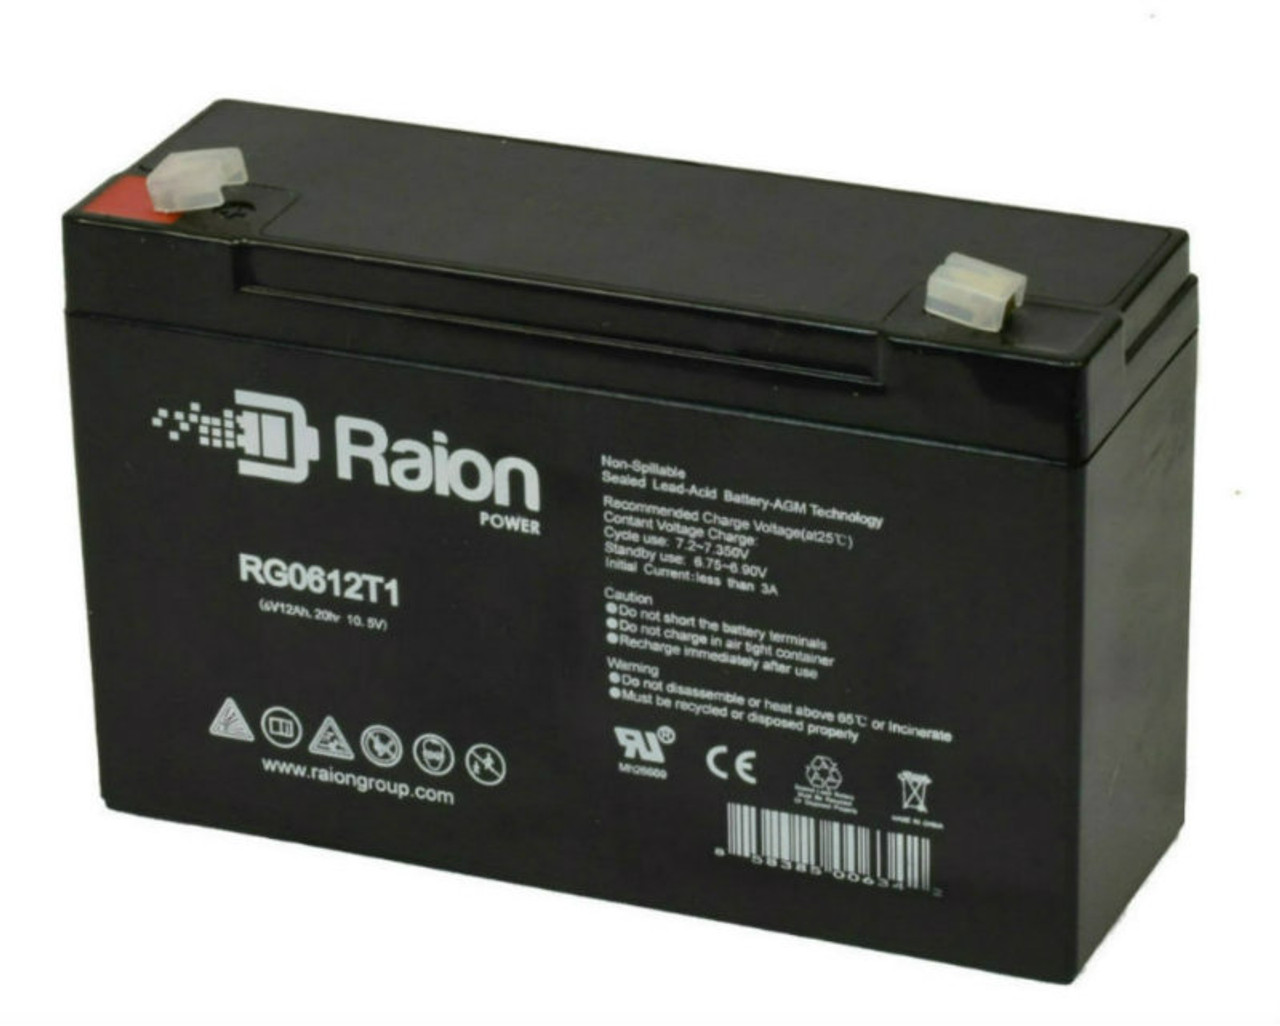 Raion Power RG06120T1 Replacement Battery Pack for Elsar 438 emergency light